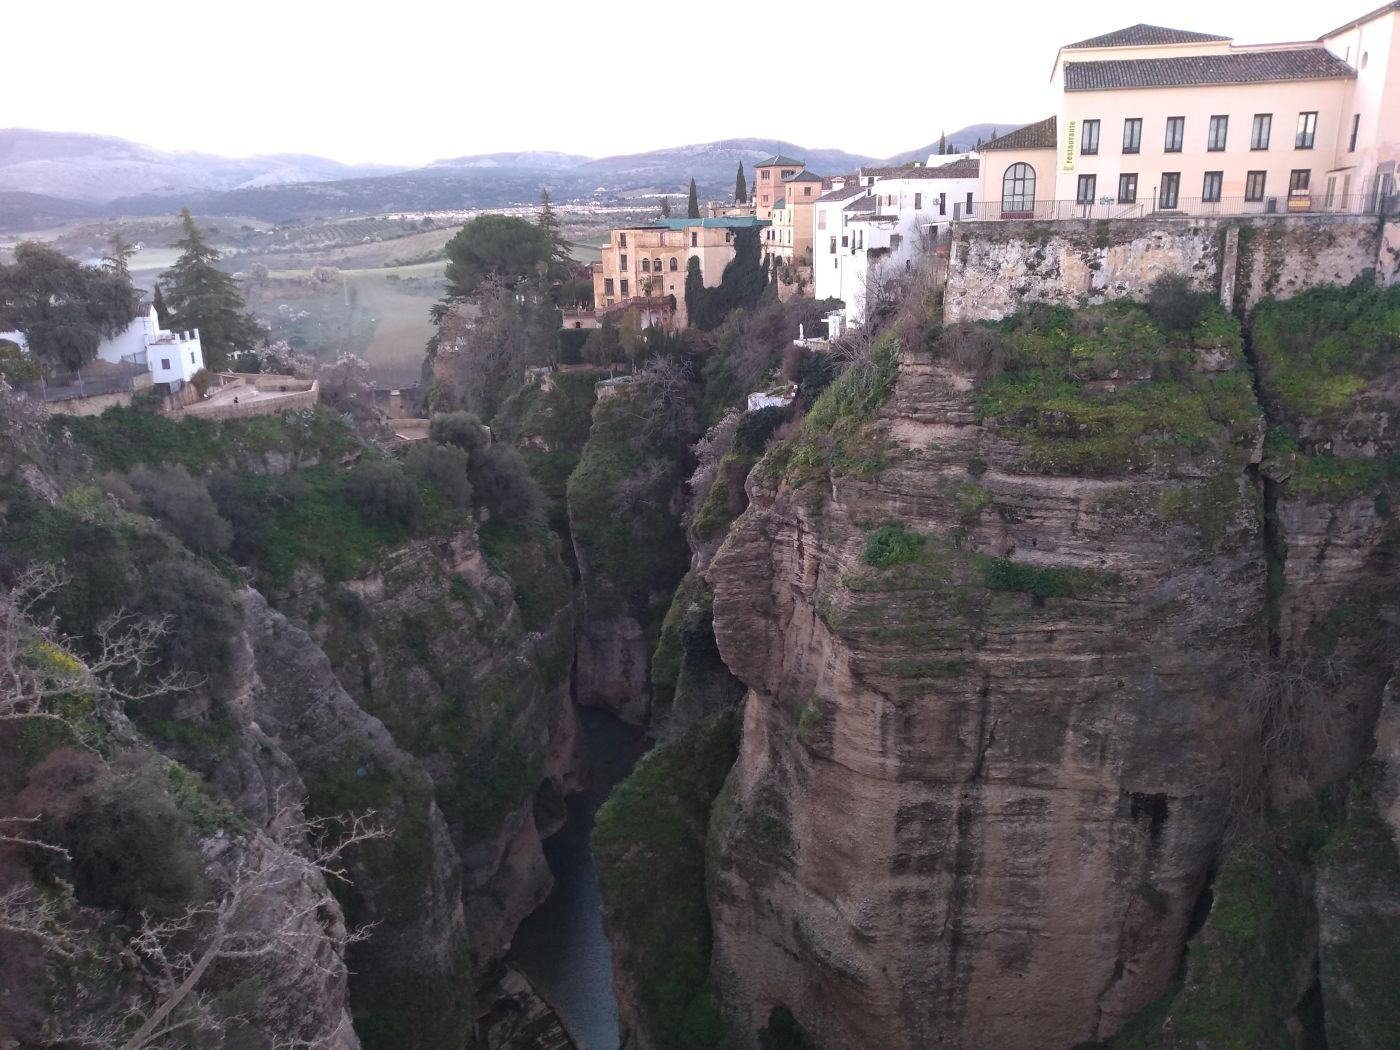 The hilltop town of Ronda